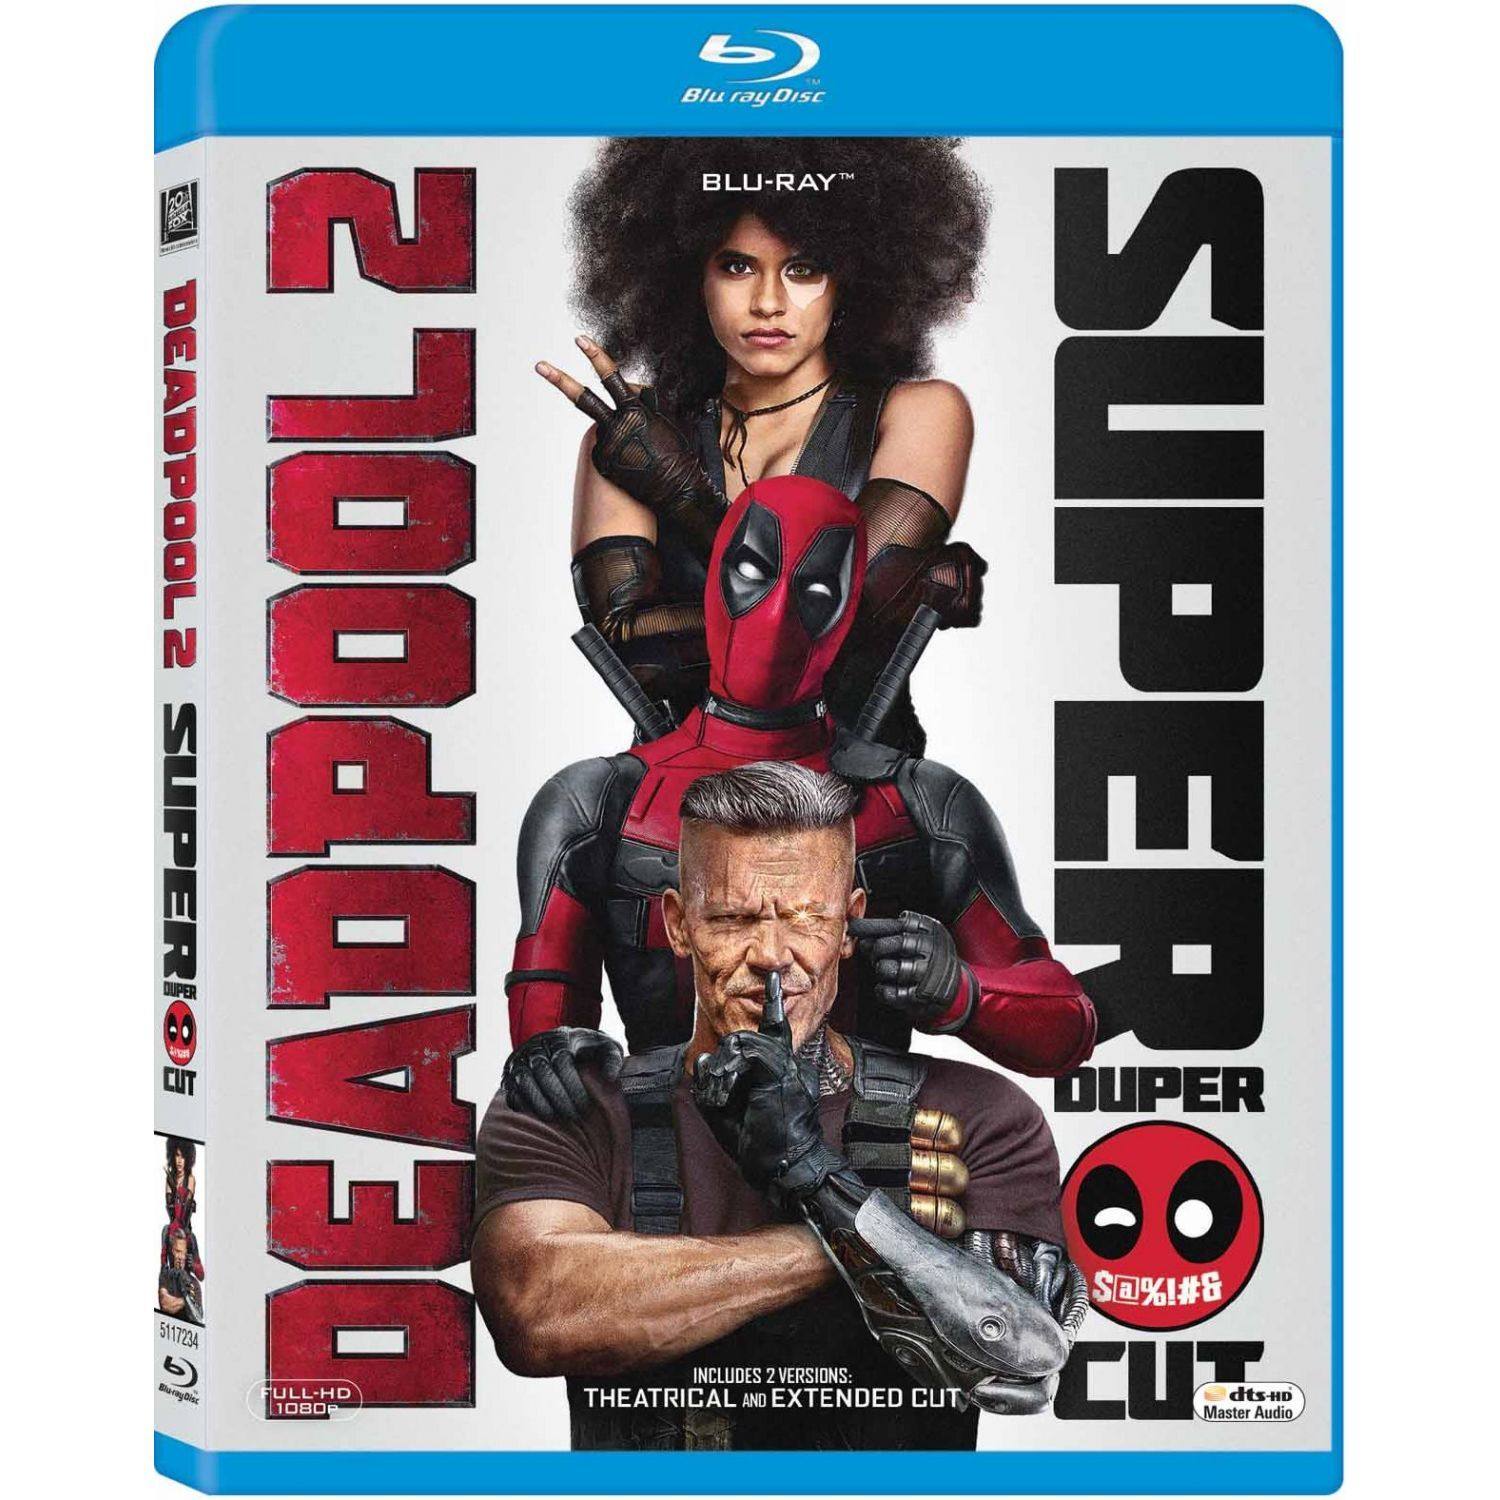 Deadpool 2 Theatrical Extended Super Duper Cut 2 Blu Ray